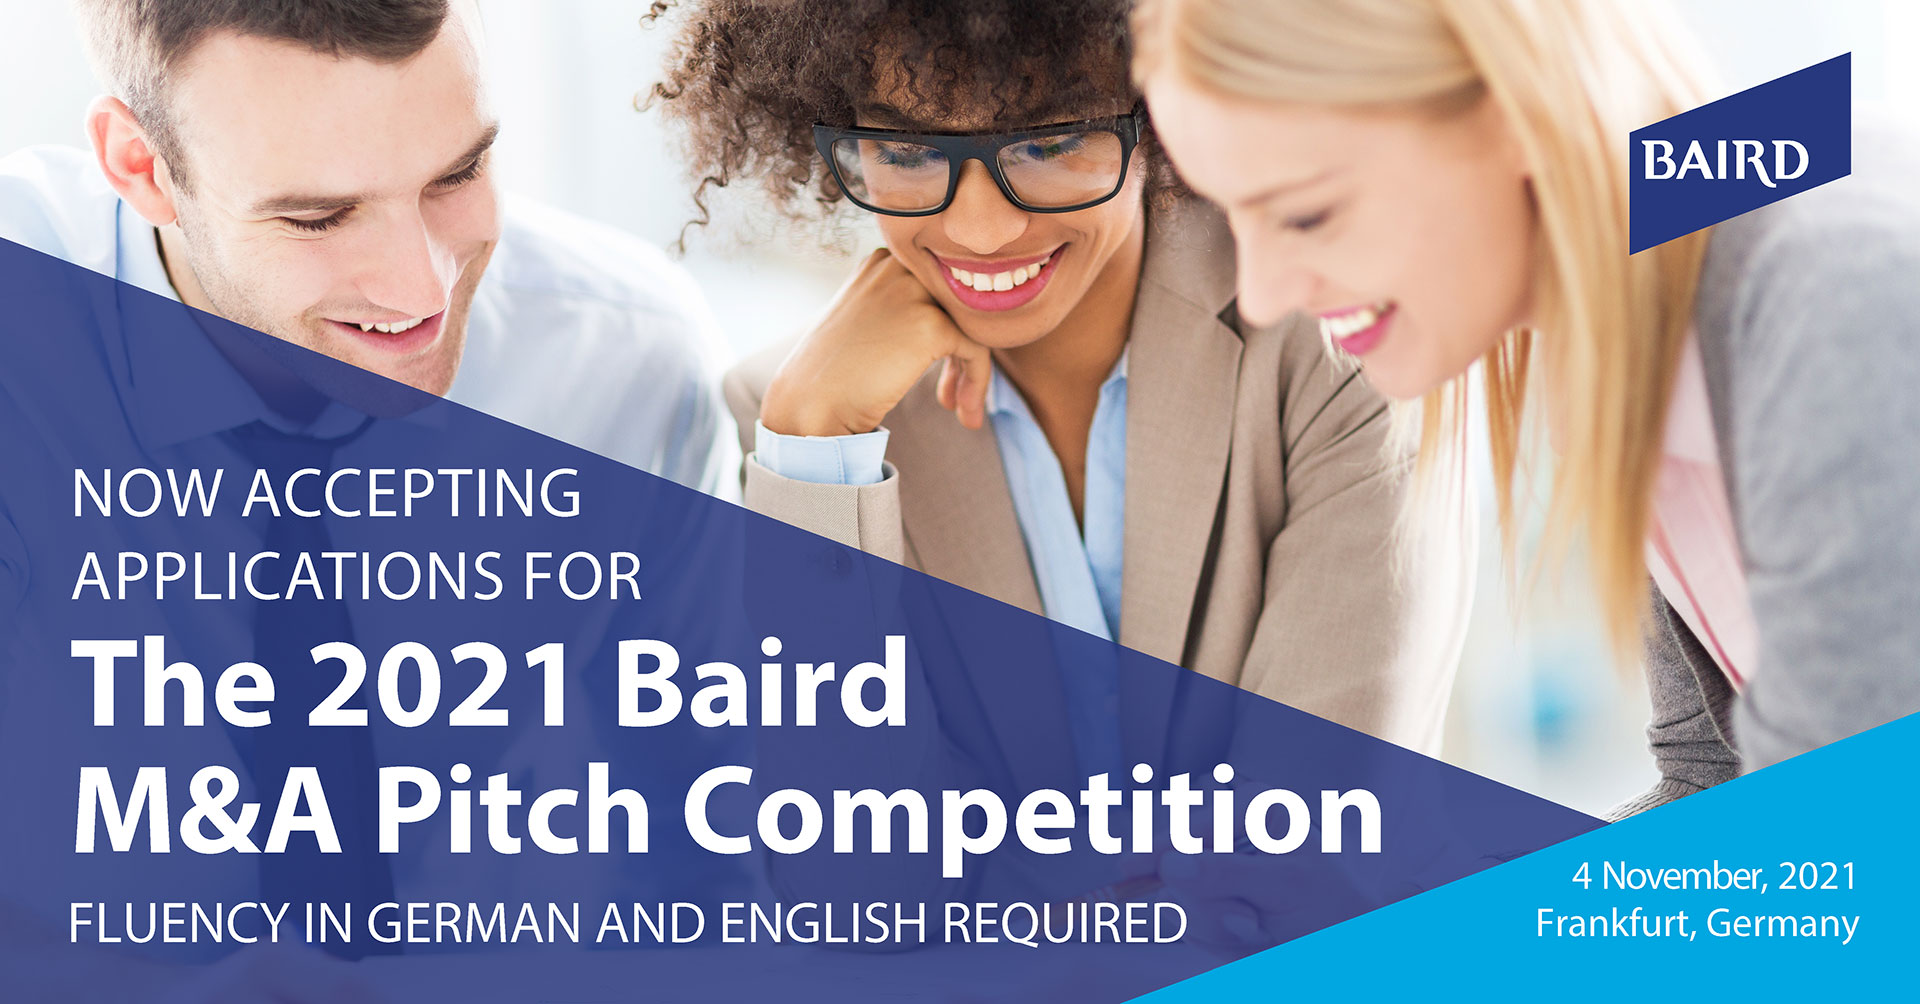 Baird's 2021 Virtual M&A Pitch Competition + Networking Event 4 November 2021